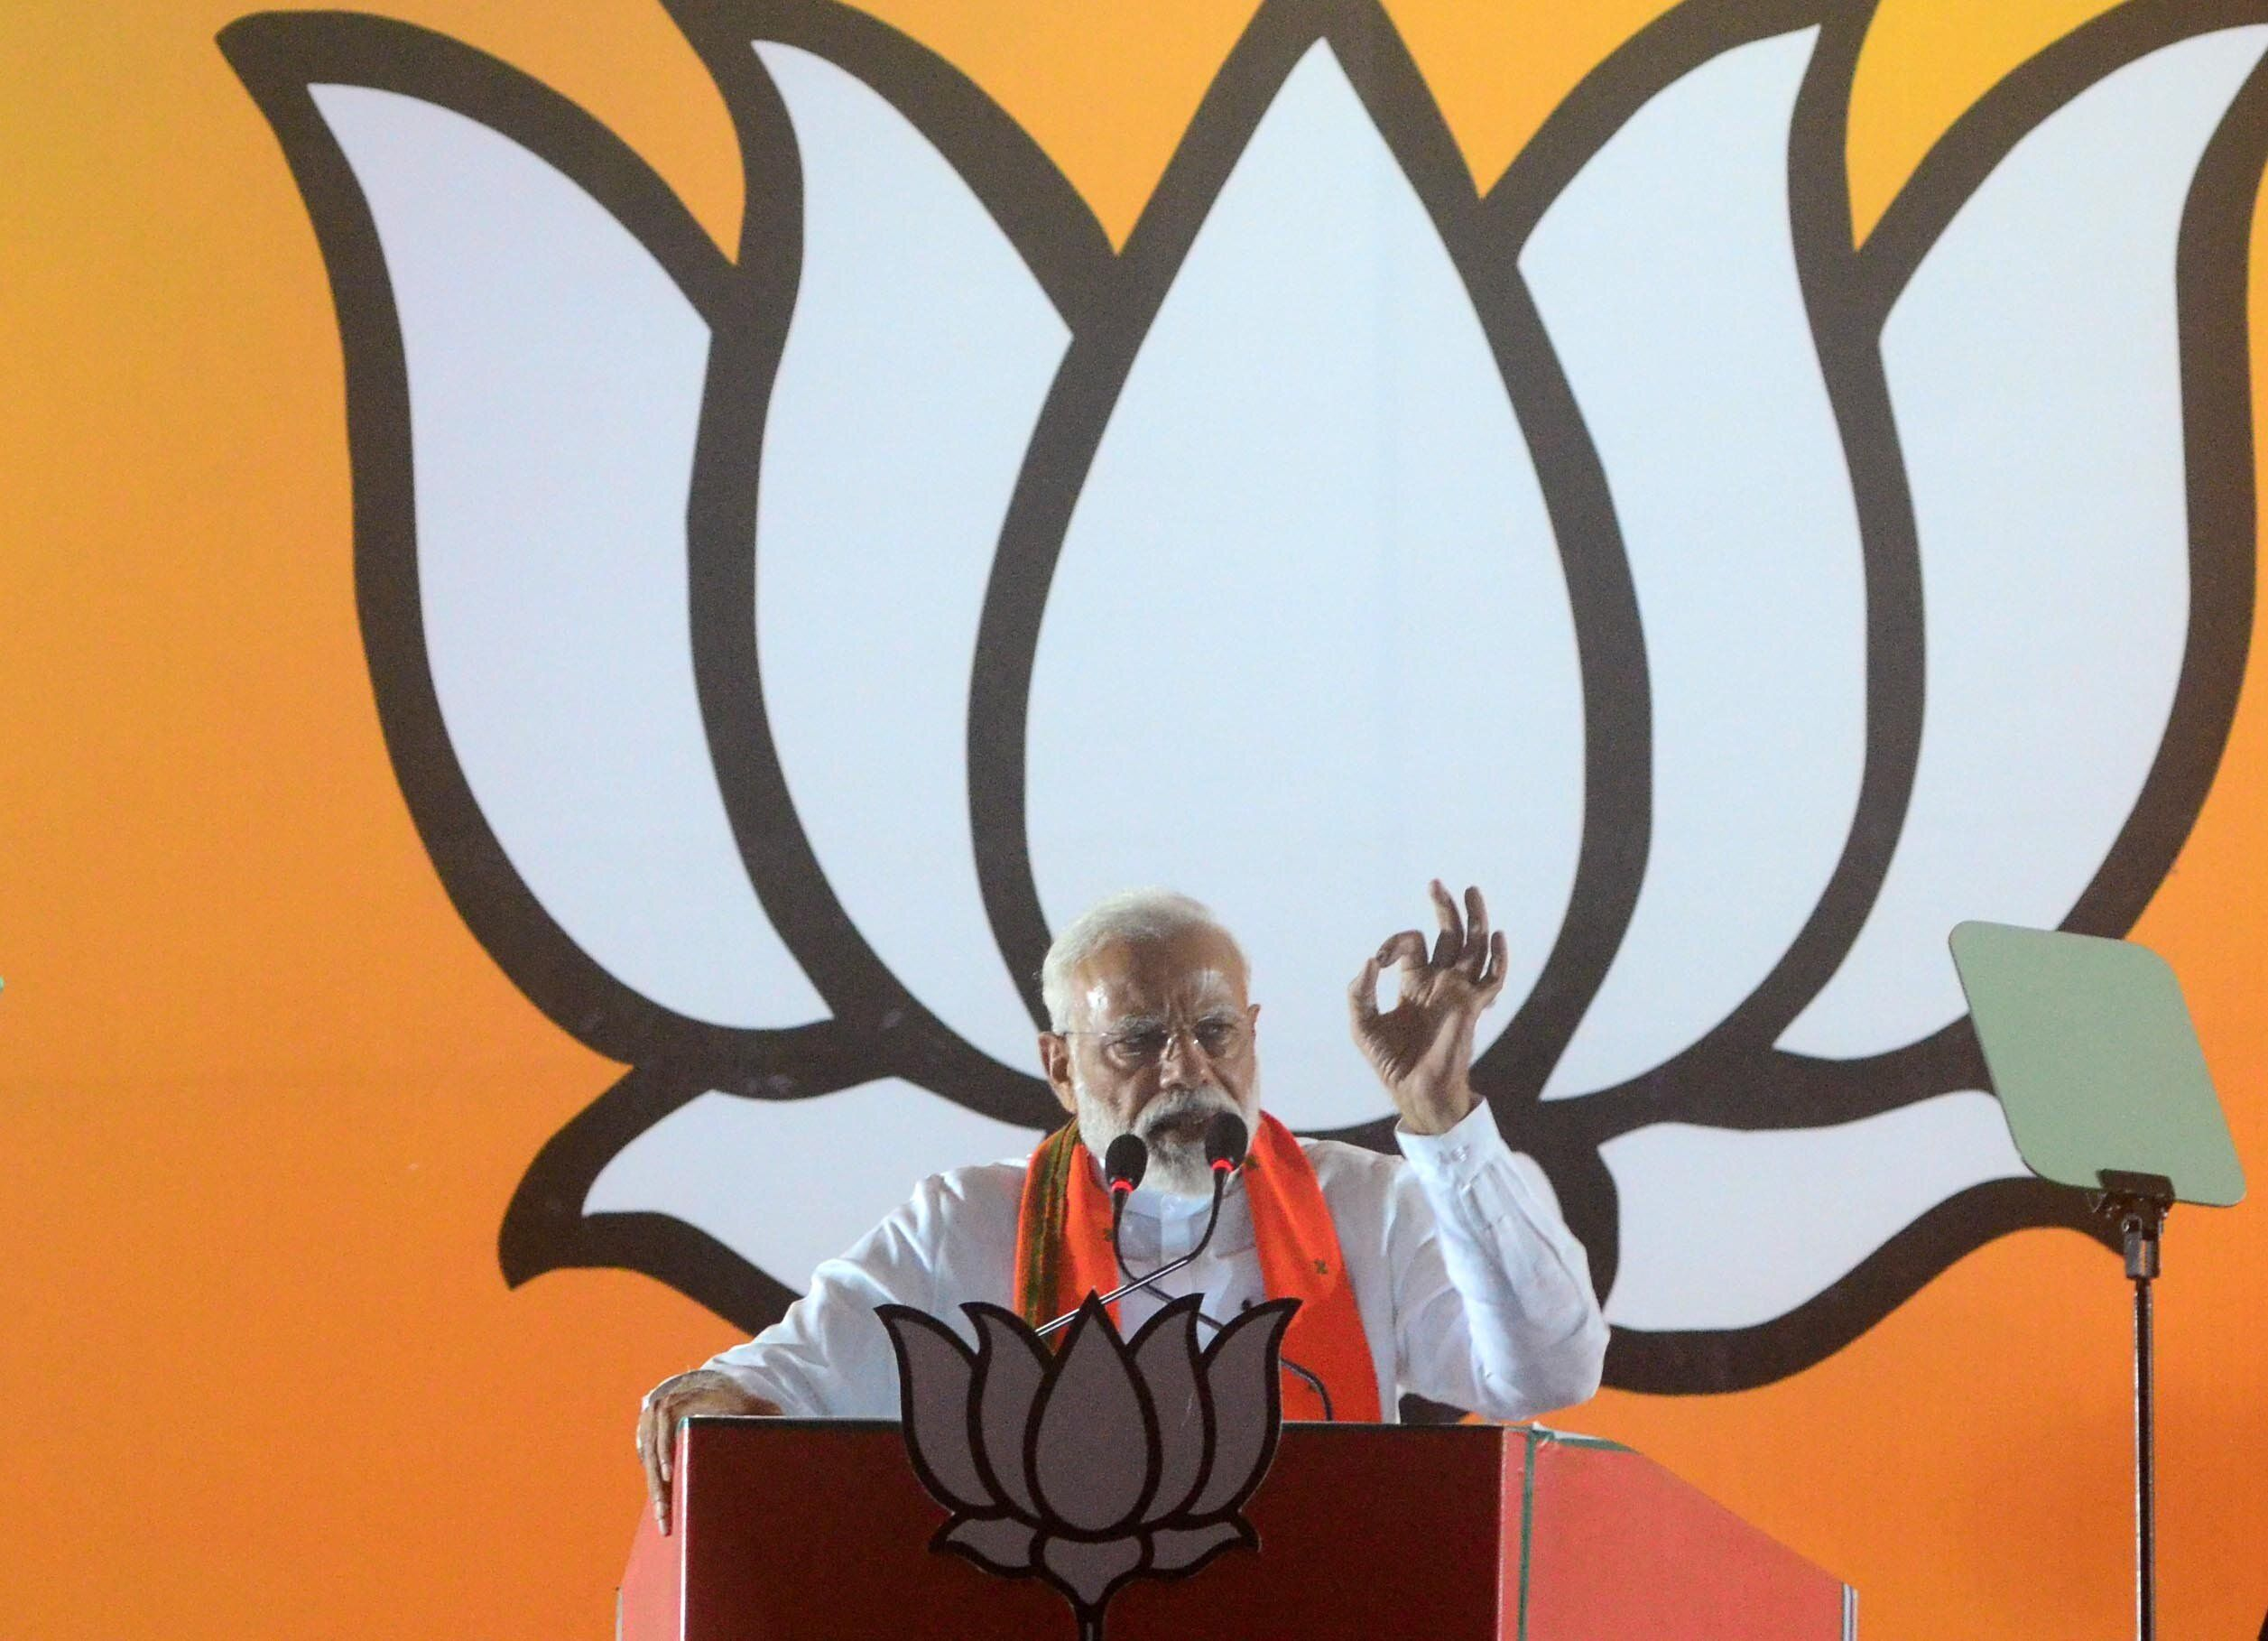 Modi speaks during his public rally in UP ahead of 6th phase of